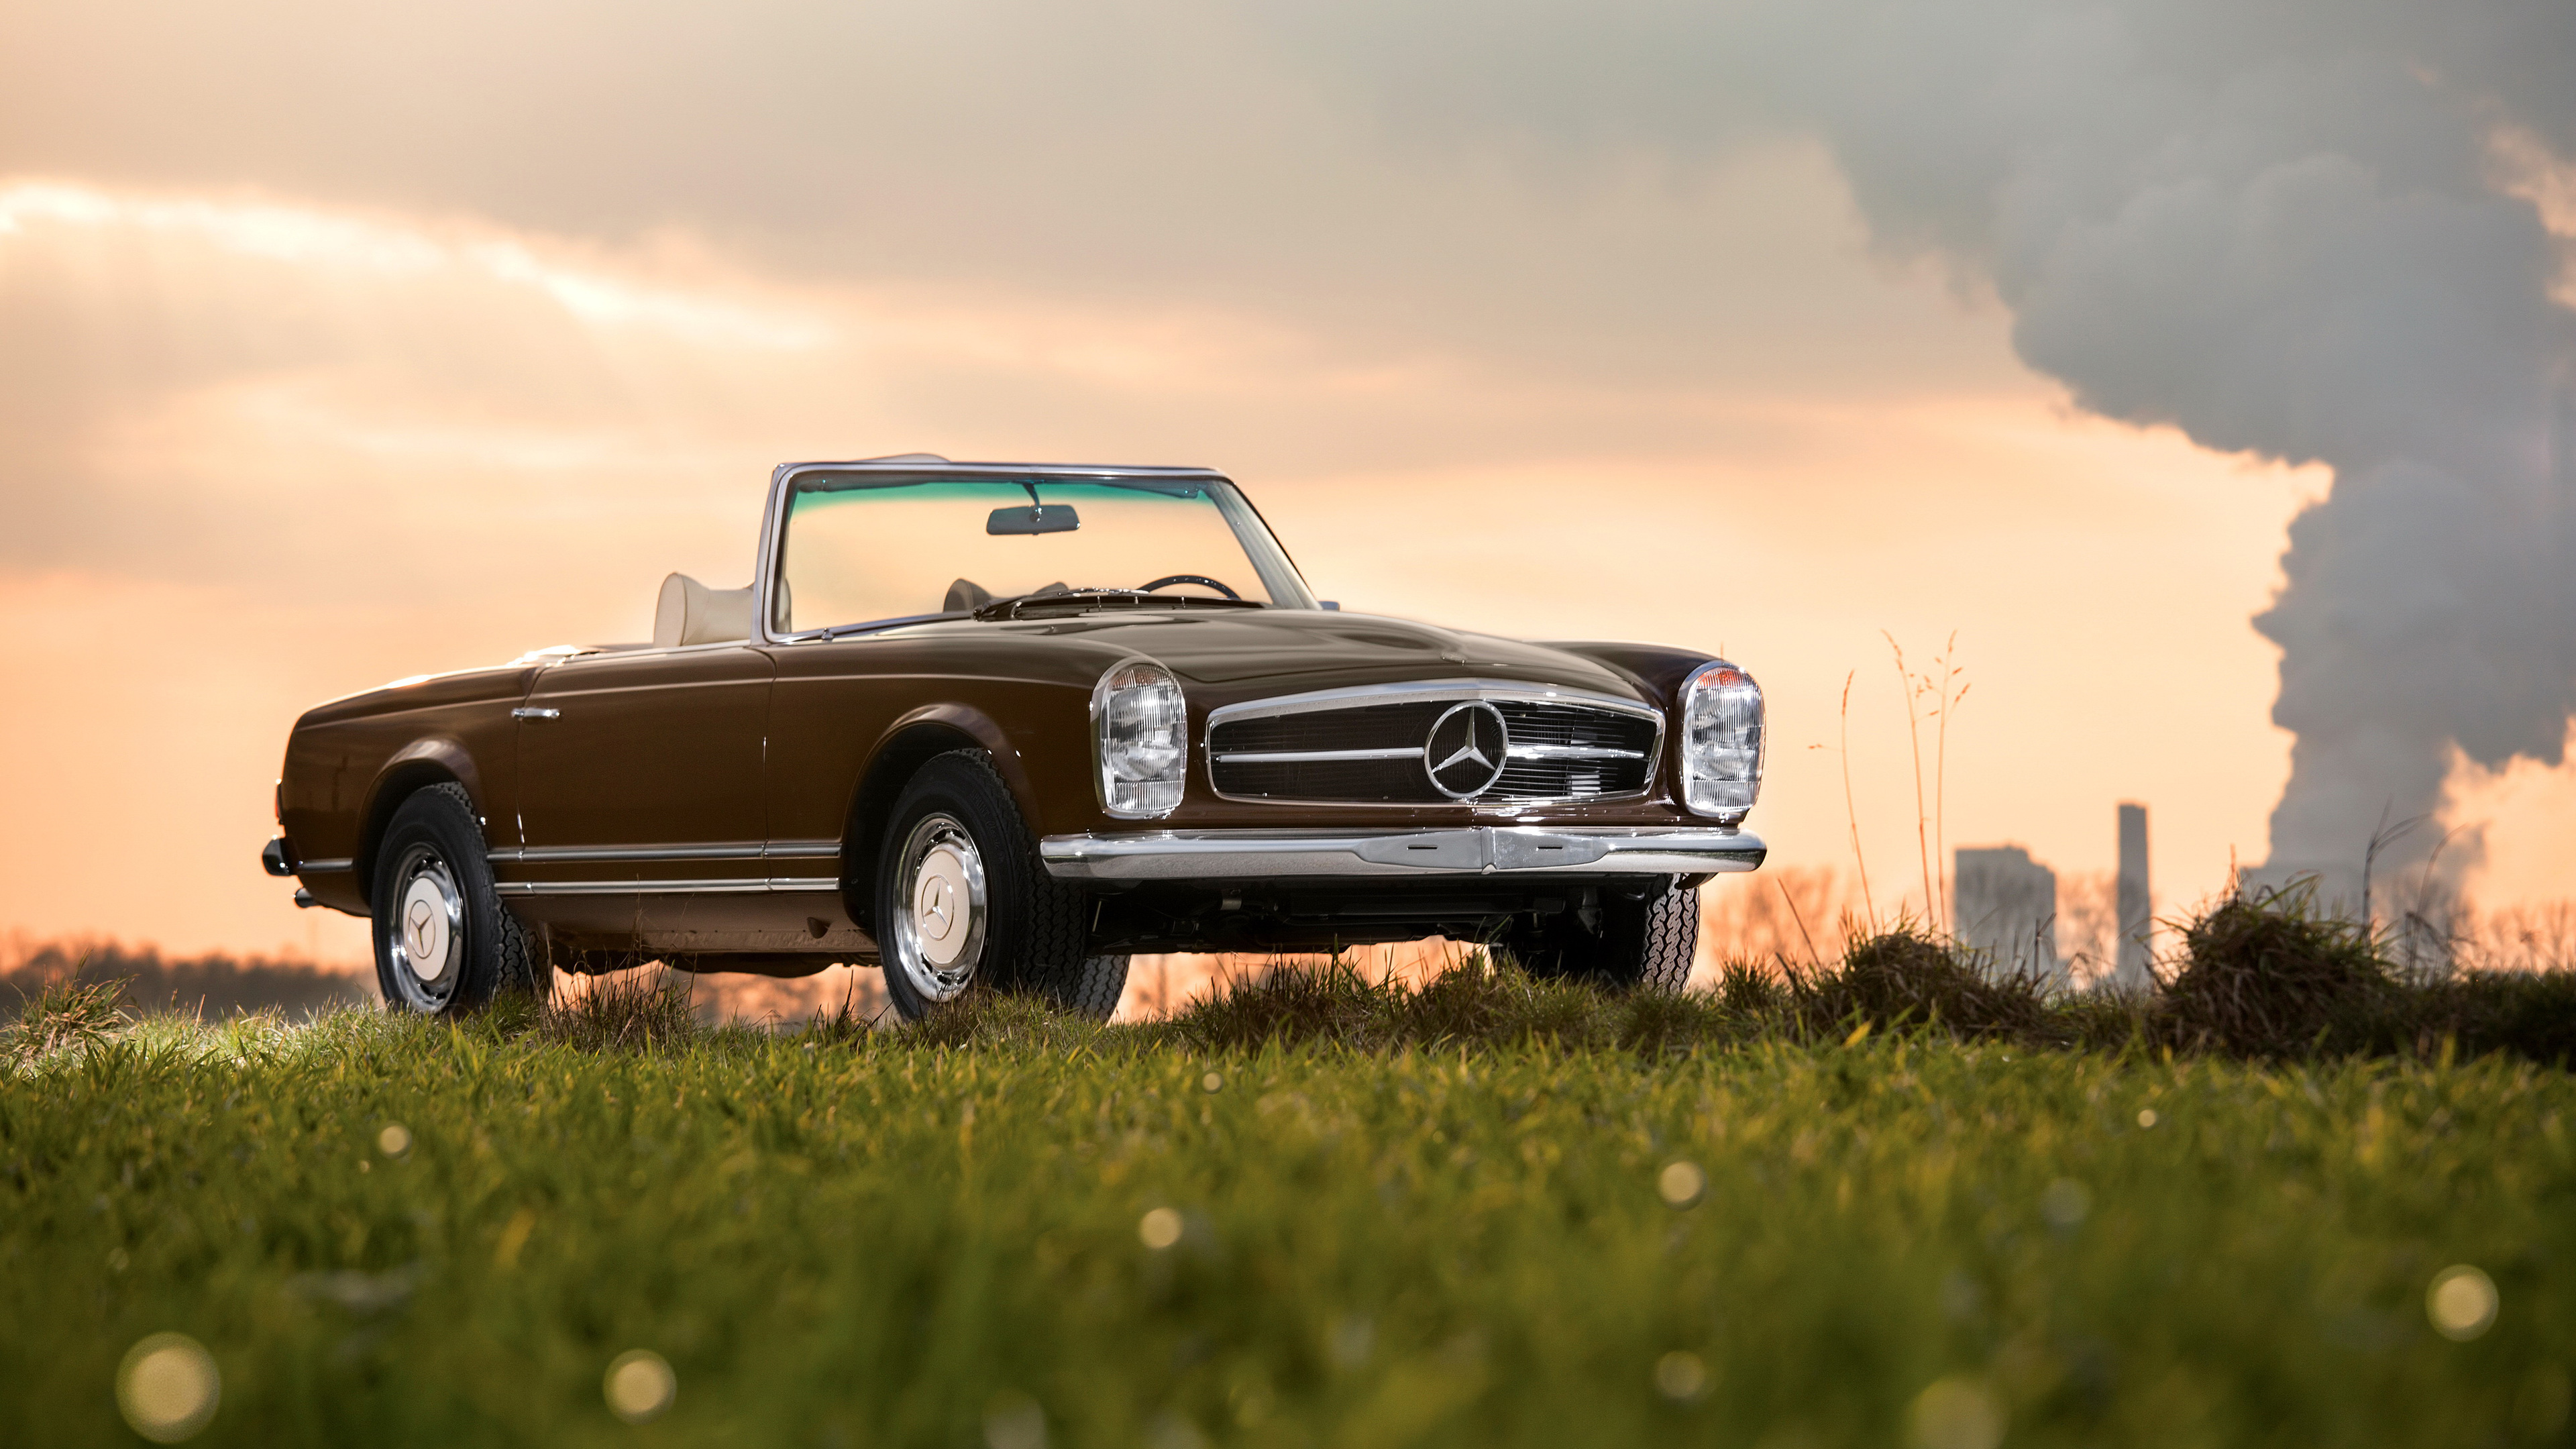 Wallpaper 4k Mercedes Benz 280 Sl 1968 4k Wallpapers Cars